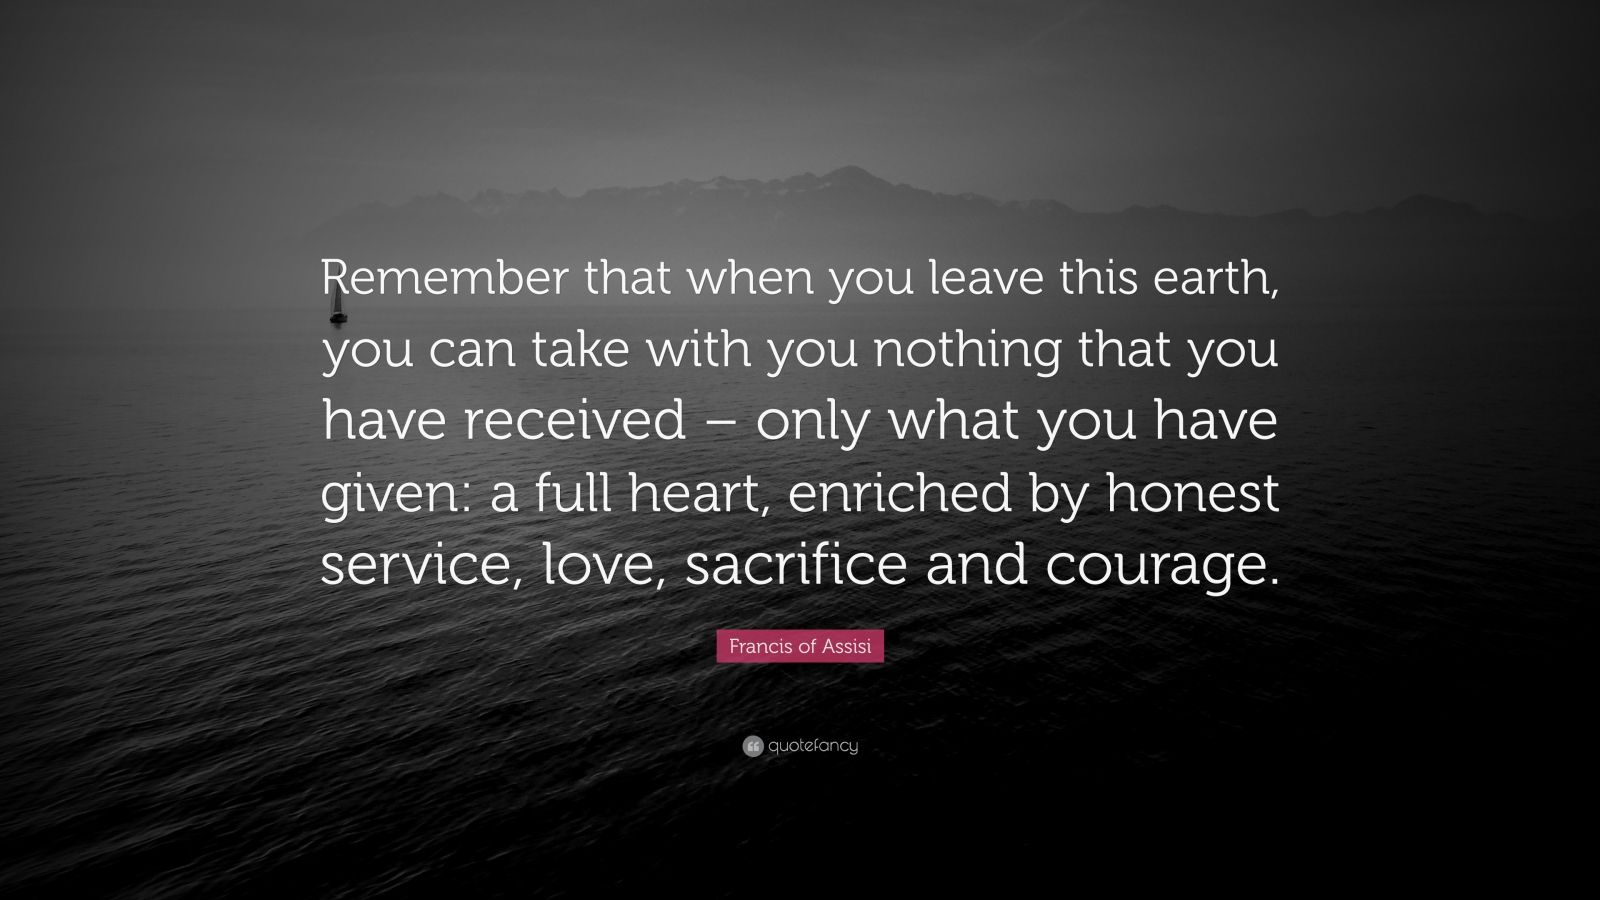 """Francis of Assisi Quote: """"Remember that when you leave this earth, you can take with you nothing that you have received – only what you have given: a full heart, enriched by honest service, love, sacrifice and courage."""""""